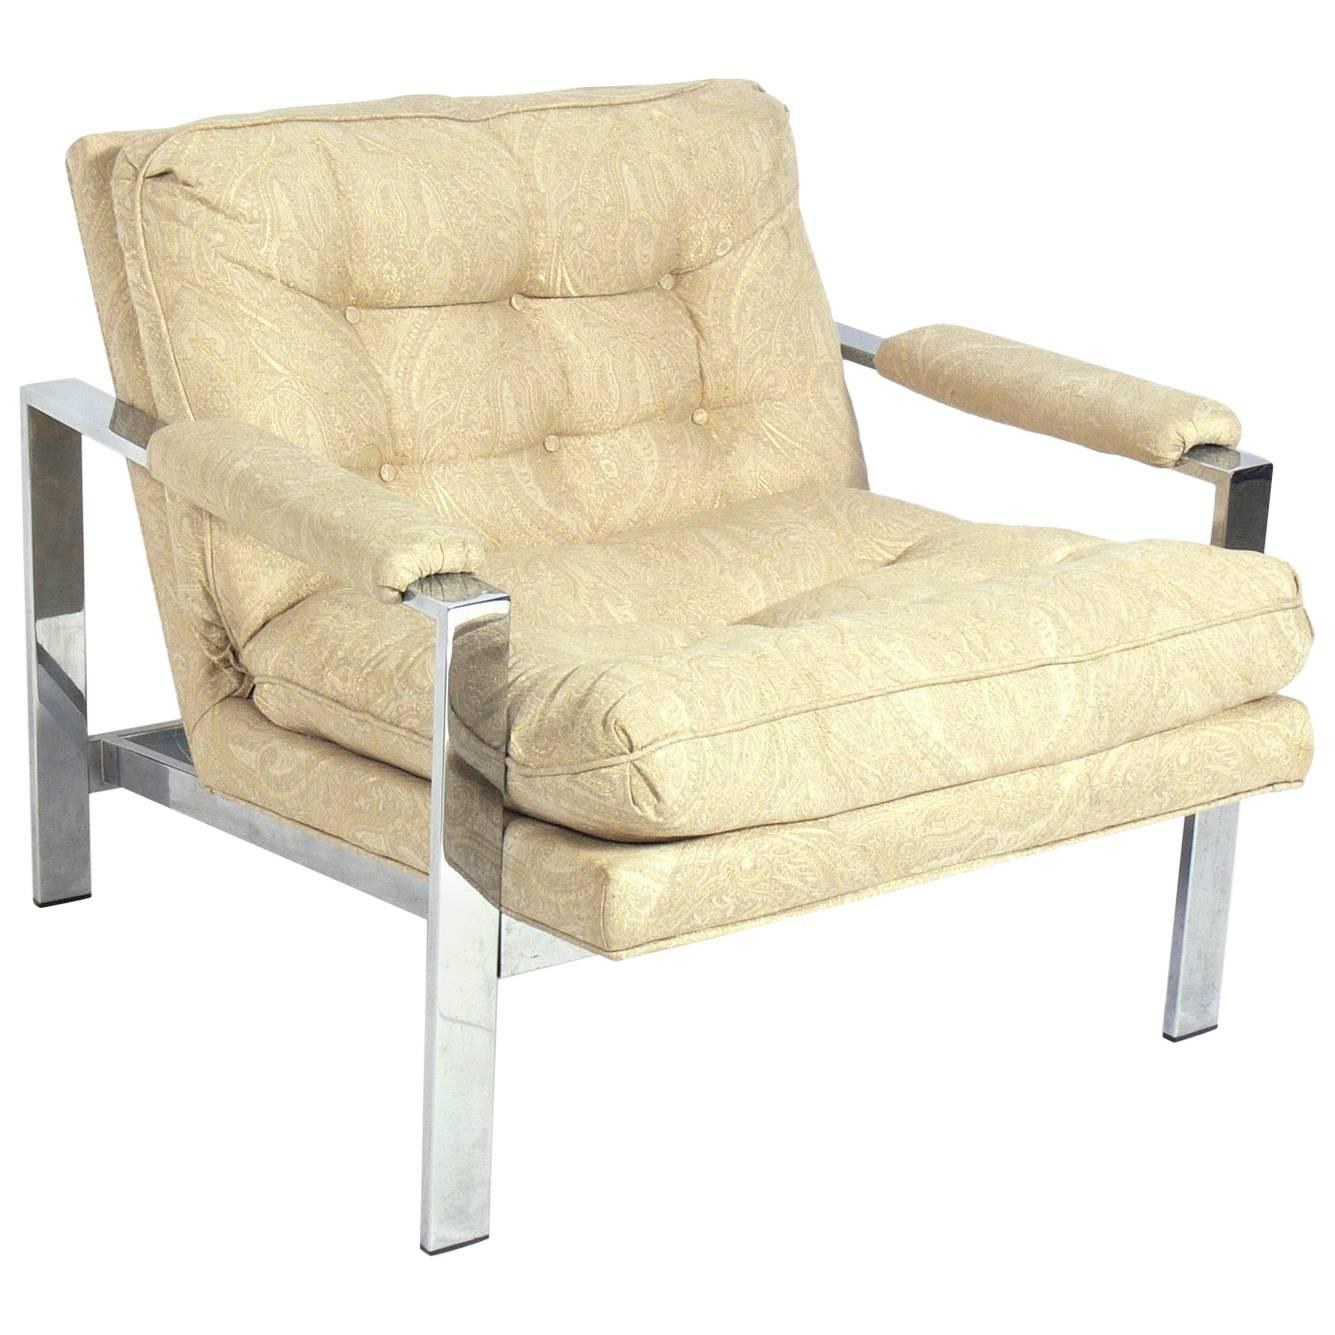 Clean Lined Chrome Lounge Chair by Milo Baughman